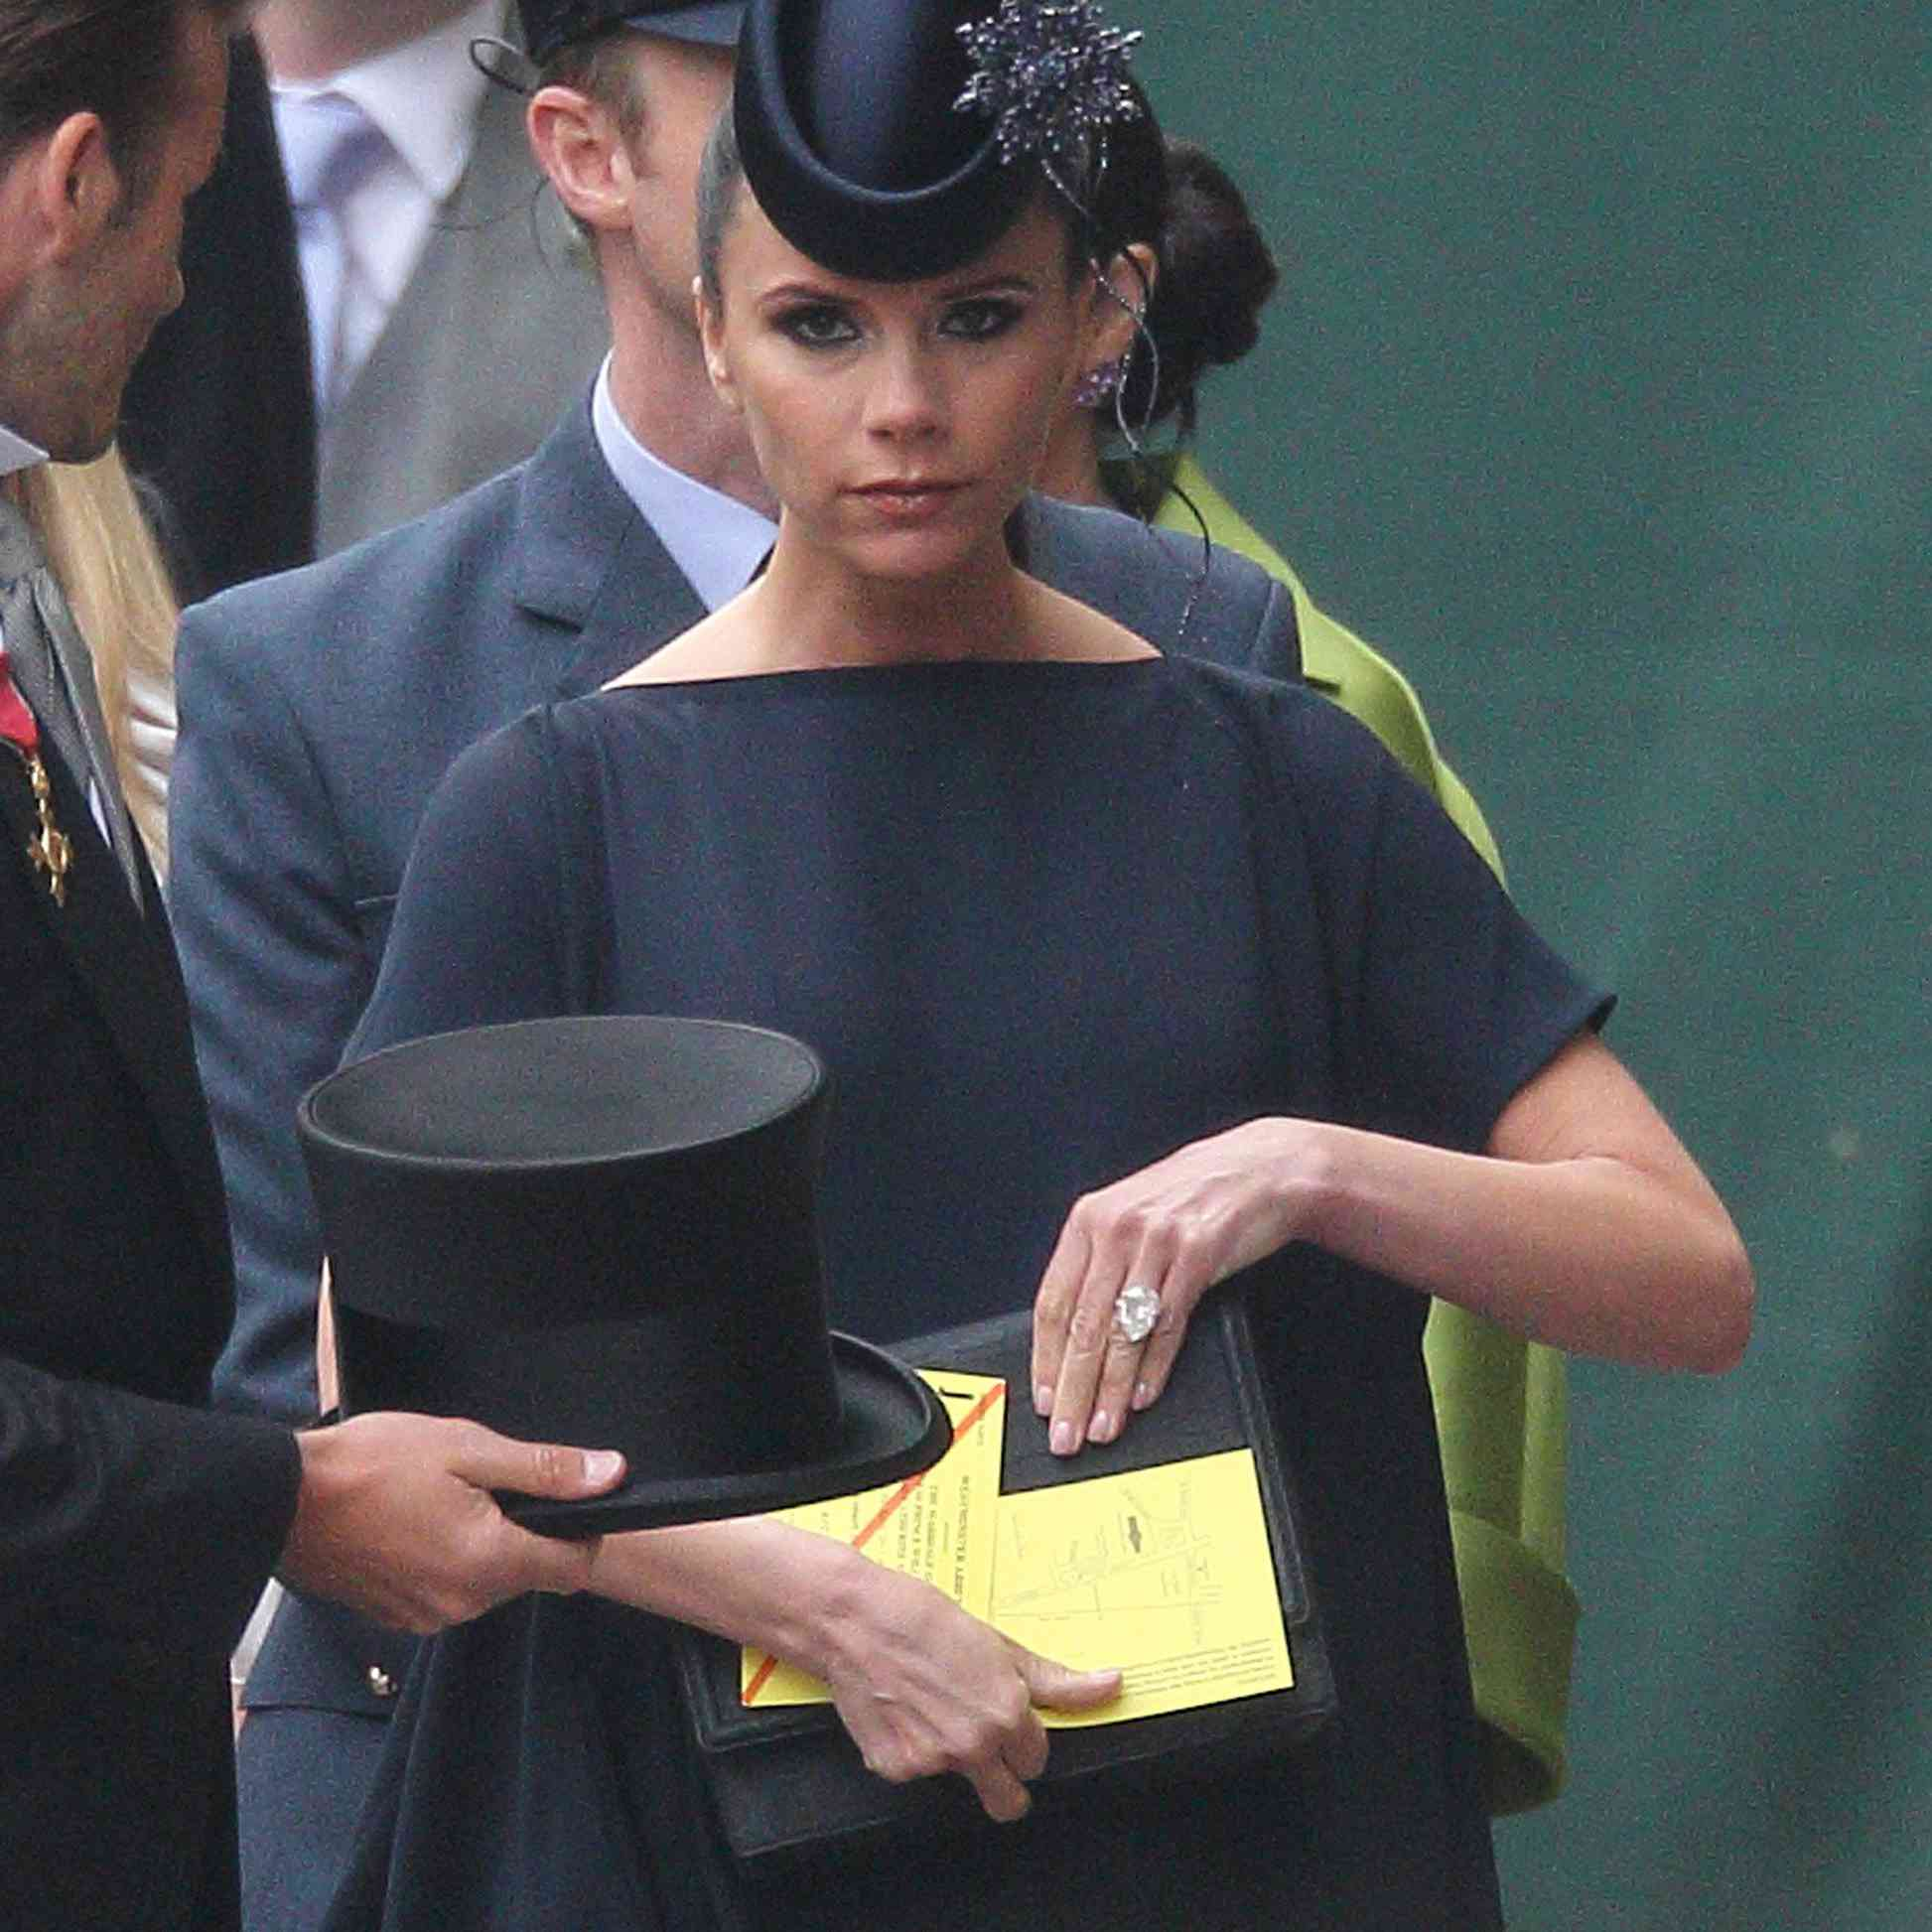 Victoria Beckham arrives to attend the Royal Wedding of Prince William to Kate Middleton